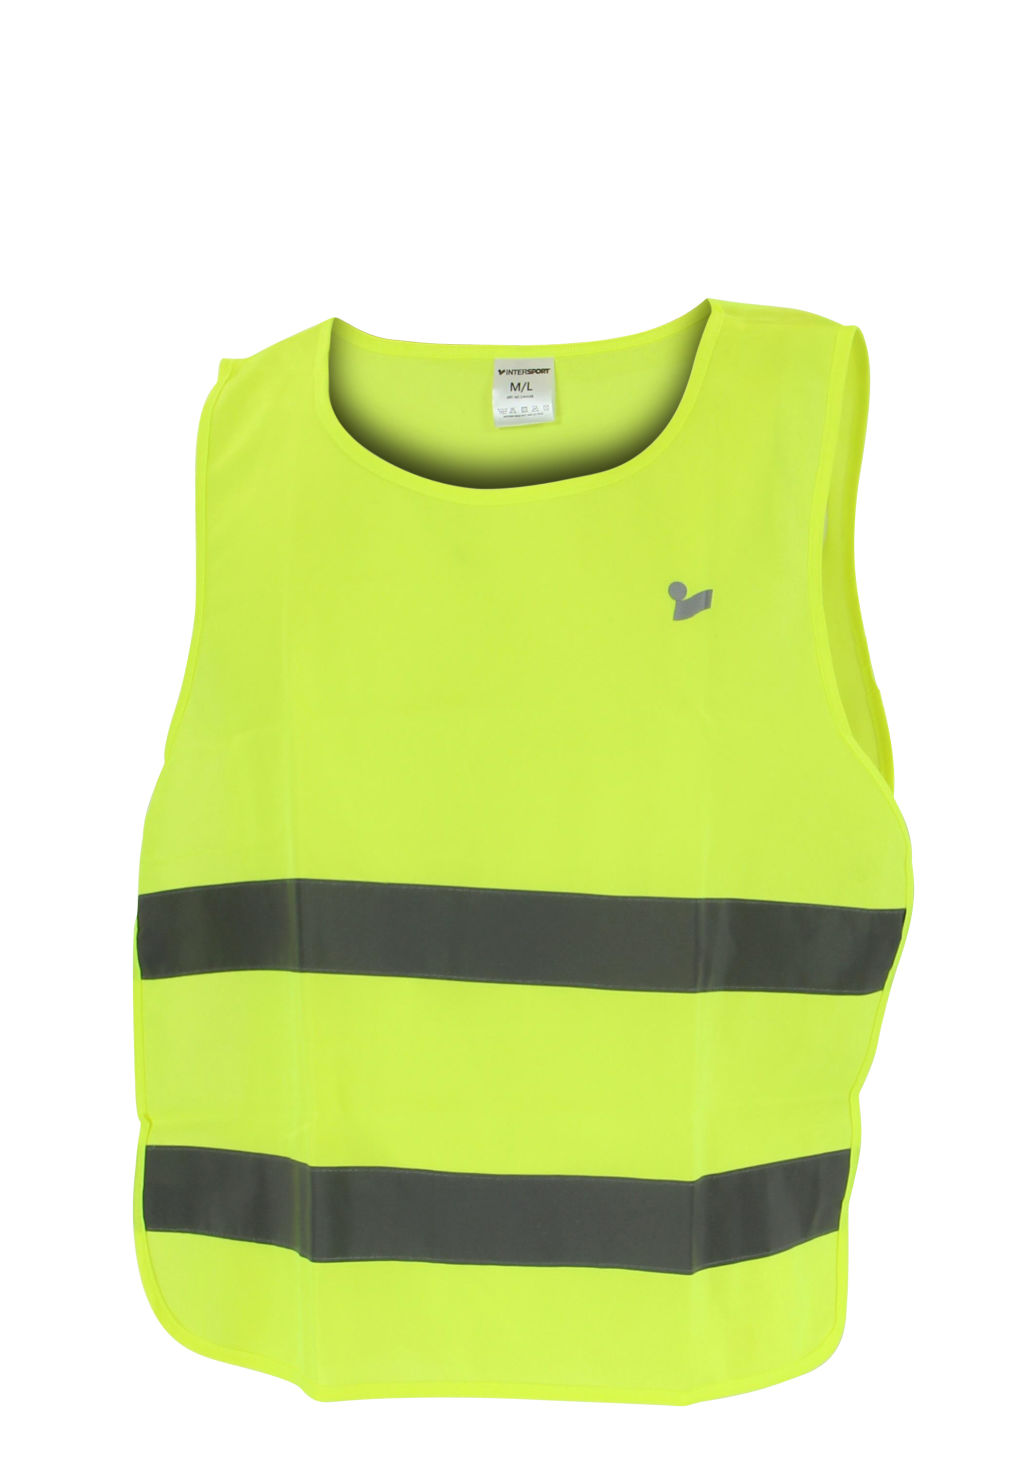 Intersport Reflex Vest